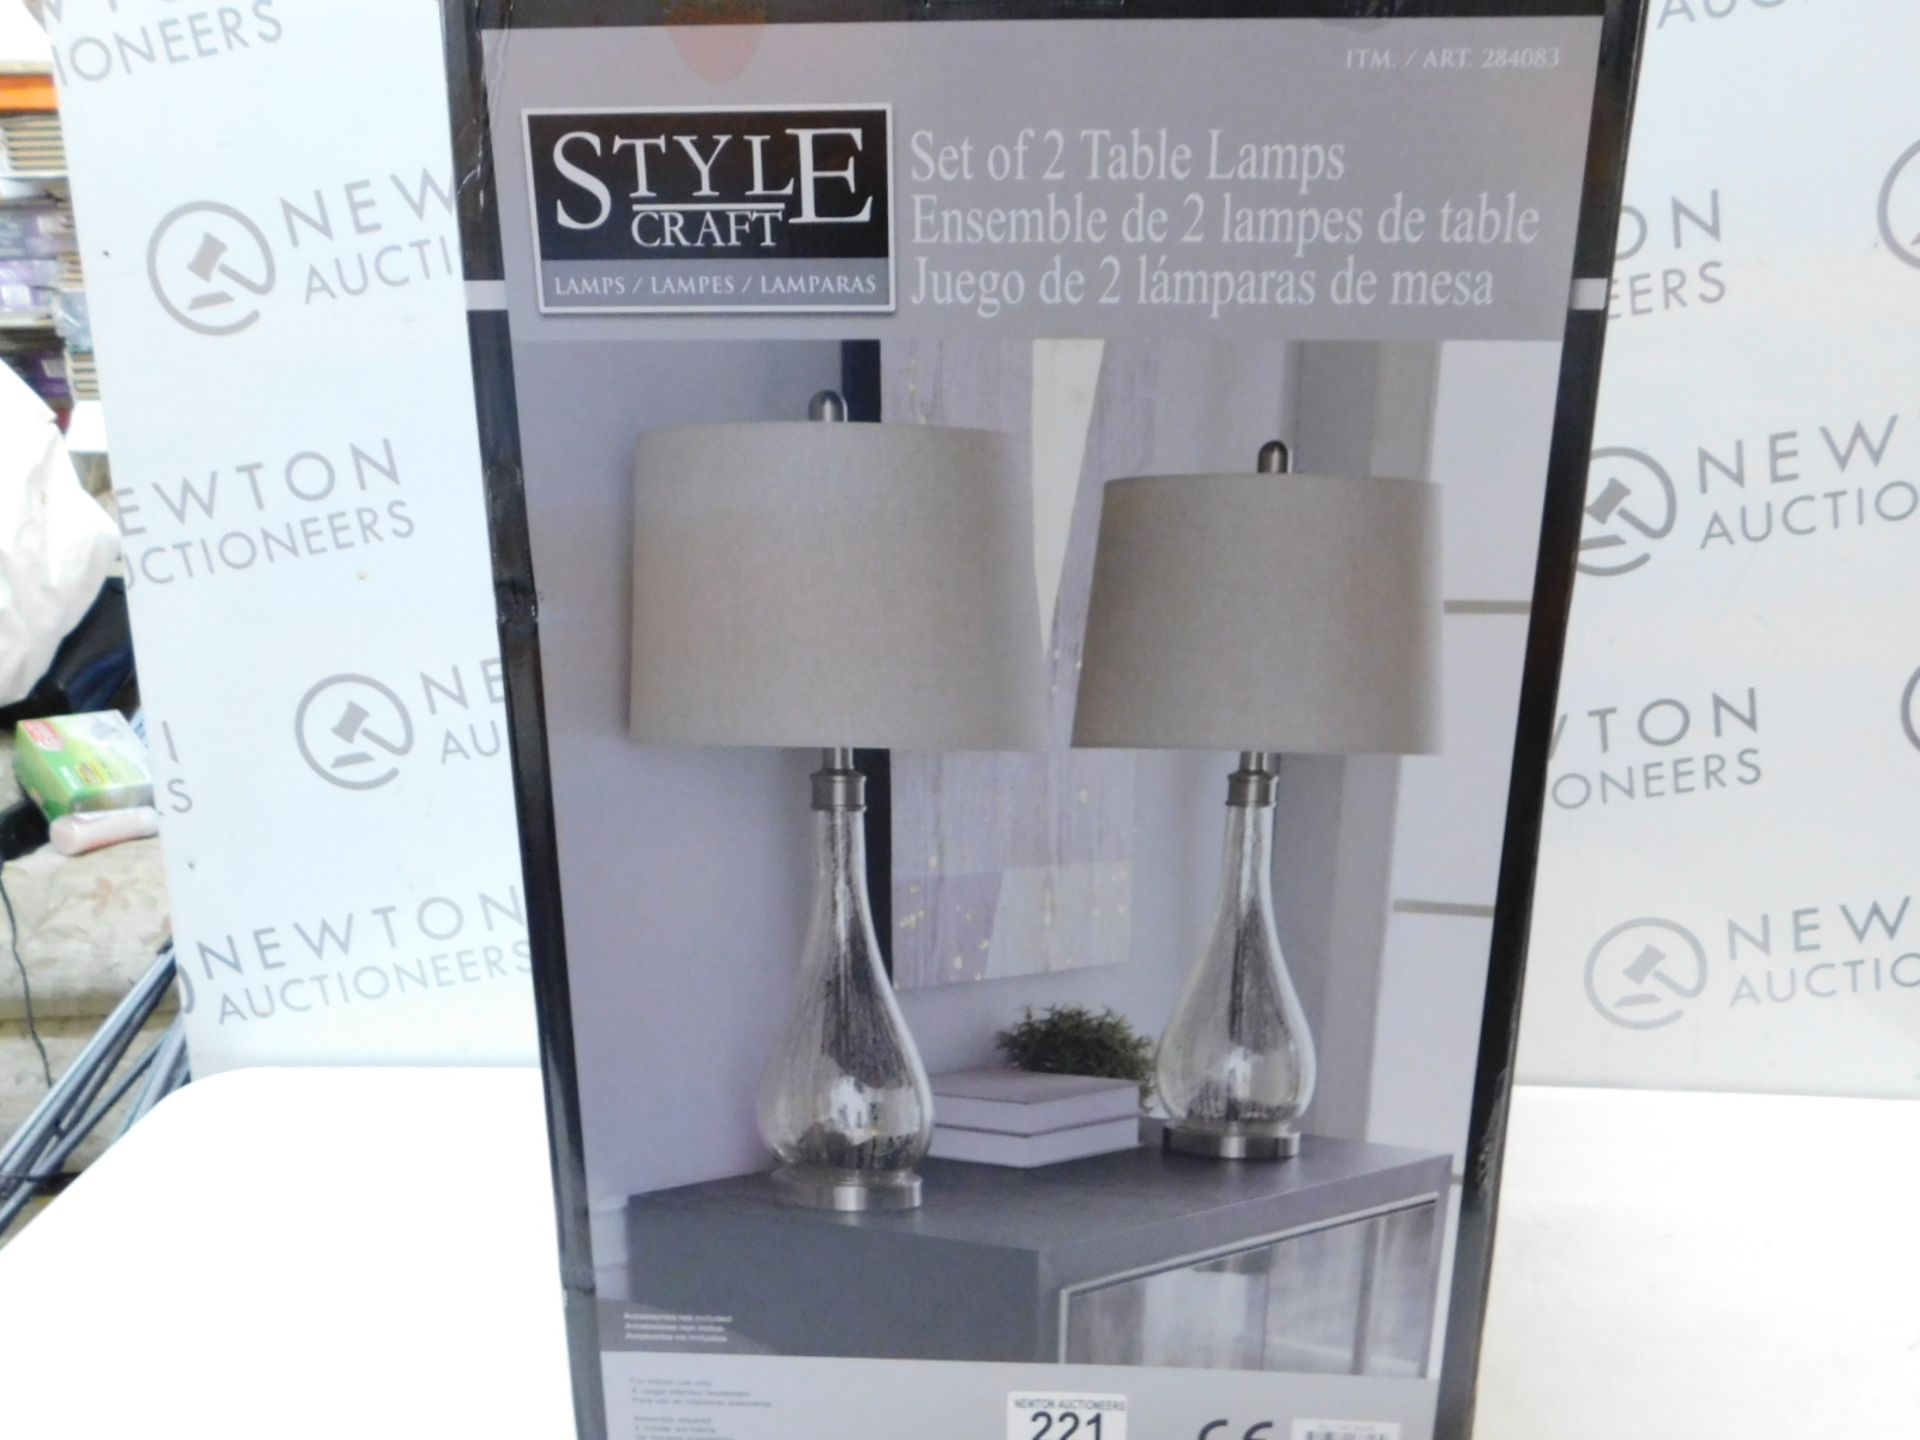 Lot 221 - 1 BOXED PAIR OF STYLE CRAFT CRYSTAL TABLE LAMPS RRP £119.99